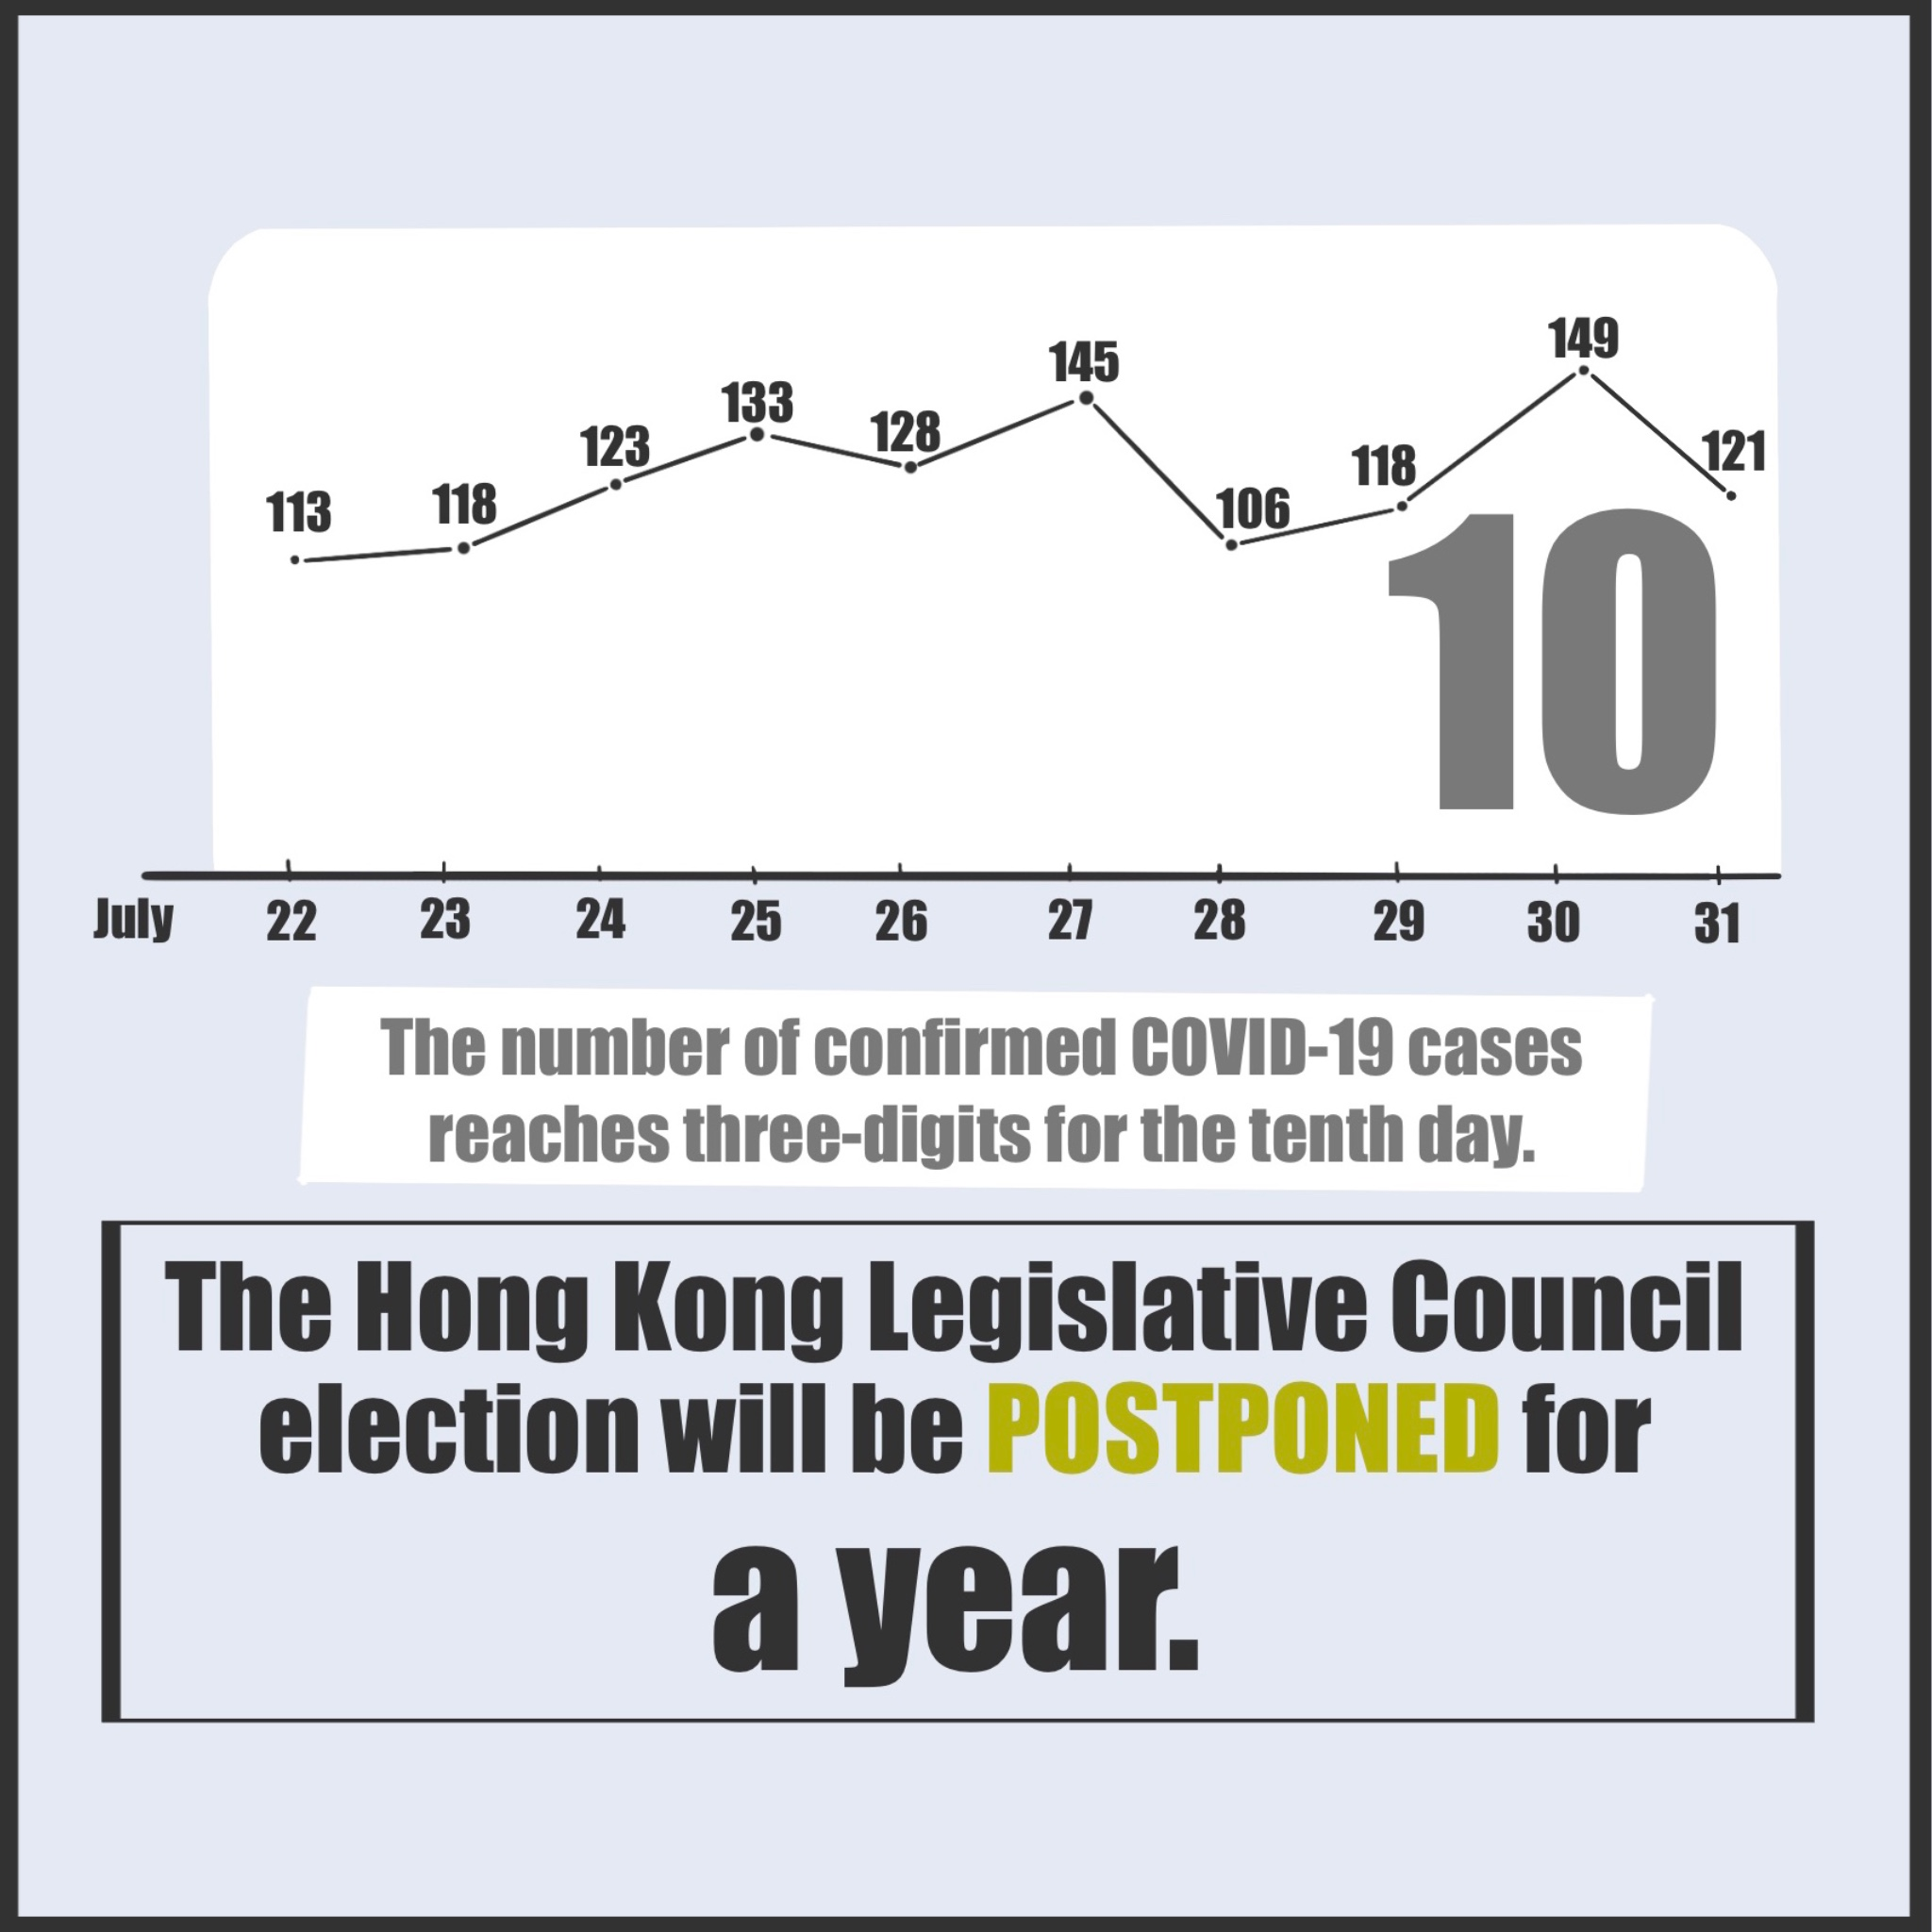 Why was the Hong Kong election postponed? These five posters explain